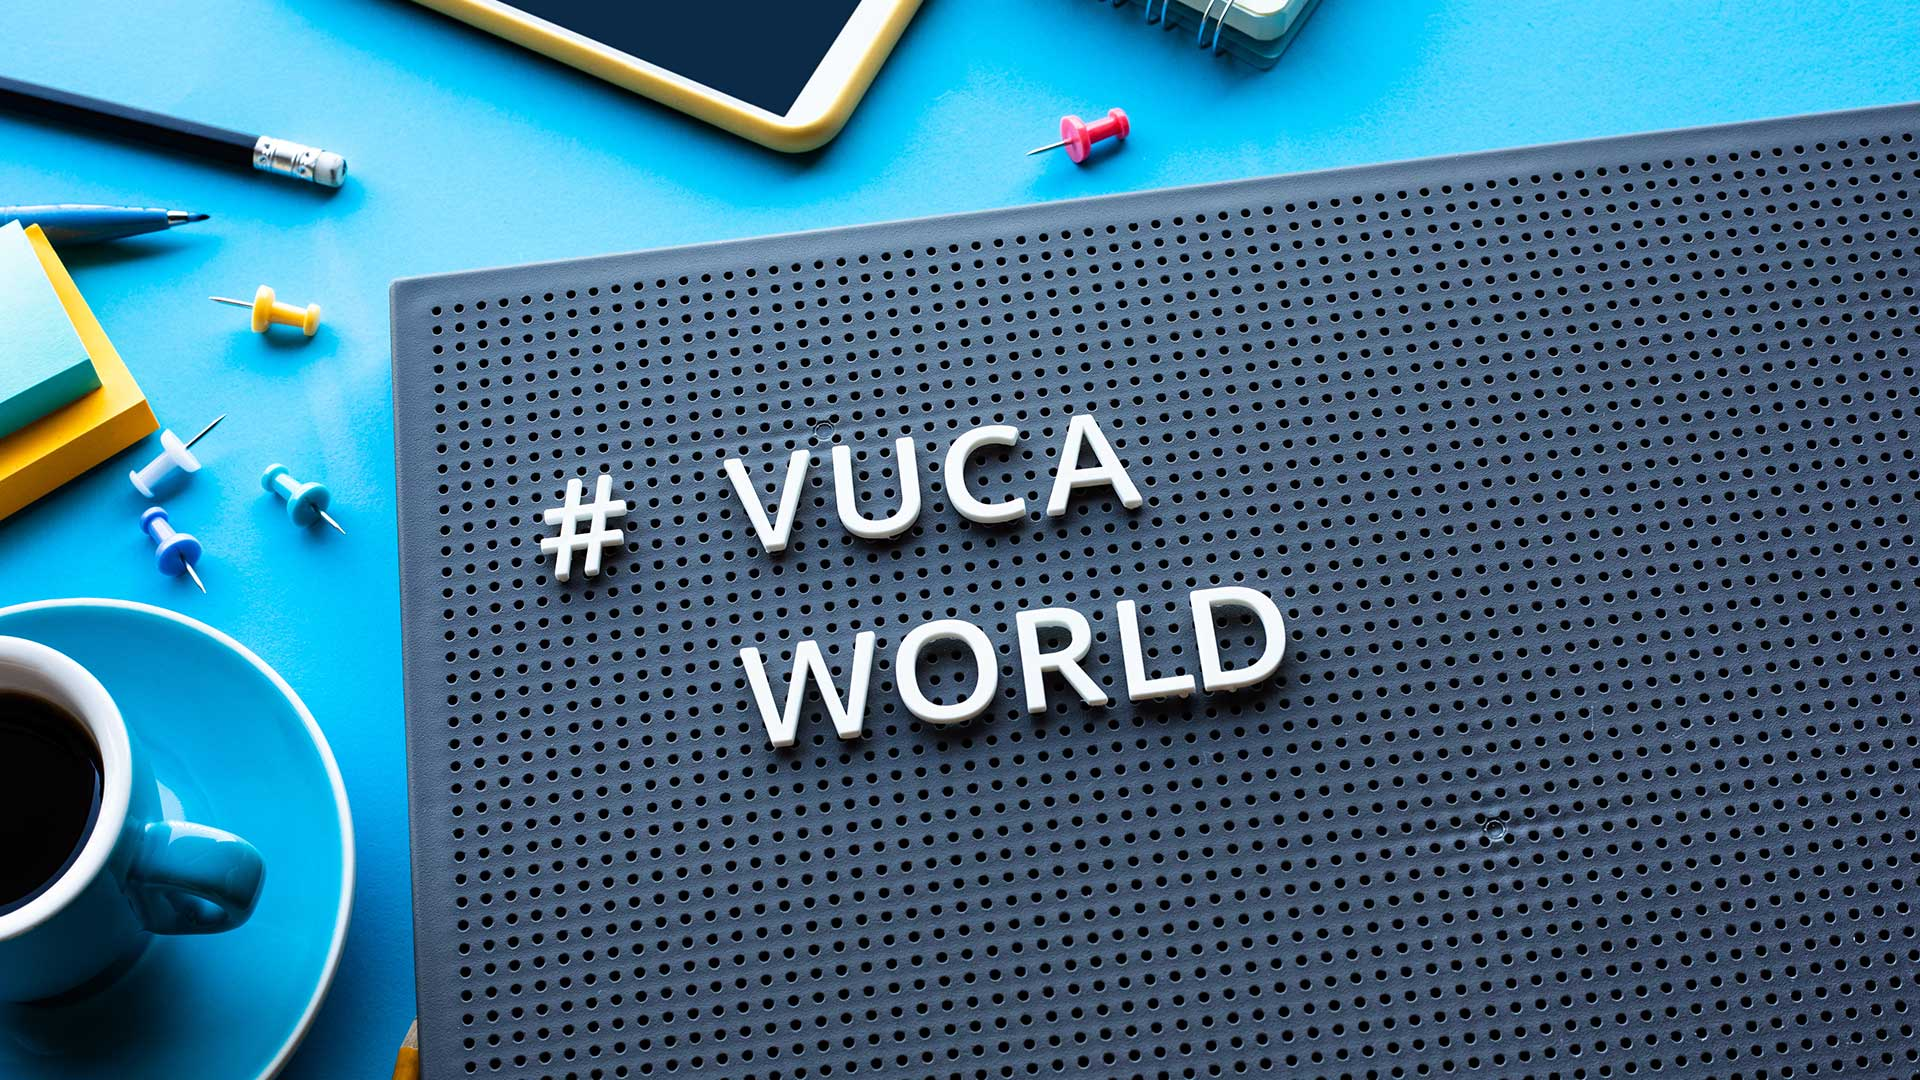 Leading in a VUCA World - Changing Conditions and Our Hybrid Work Environment